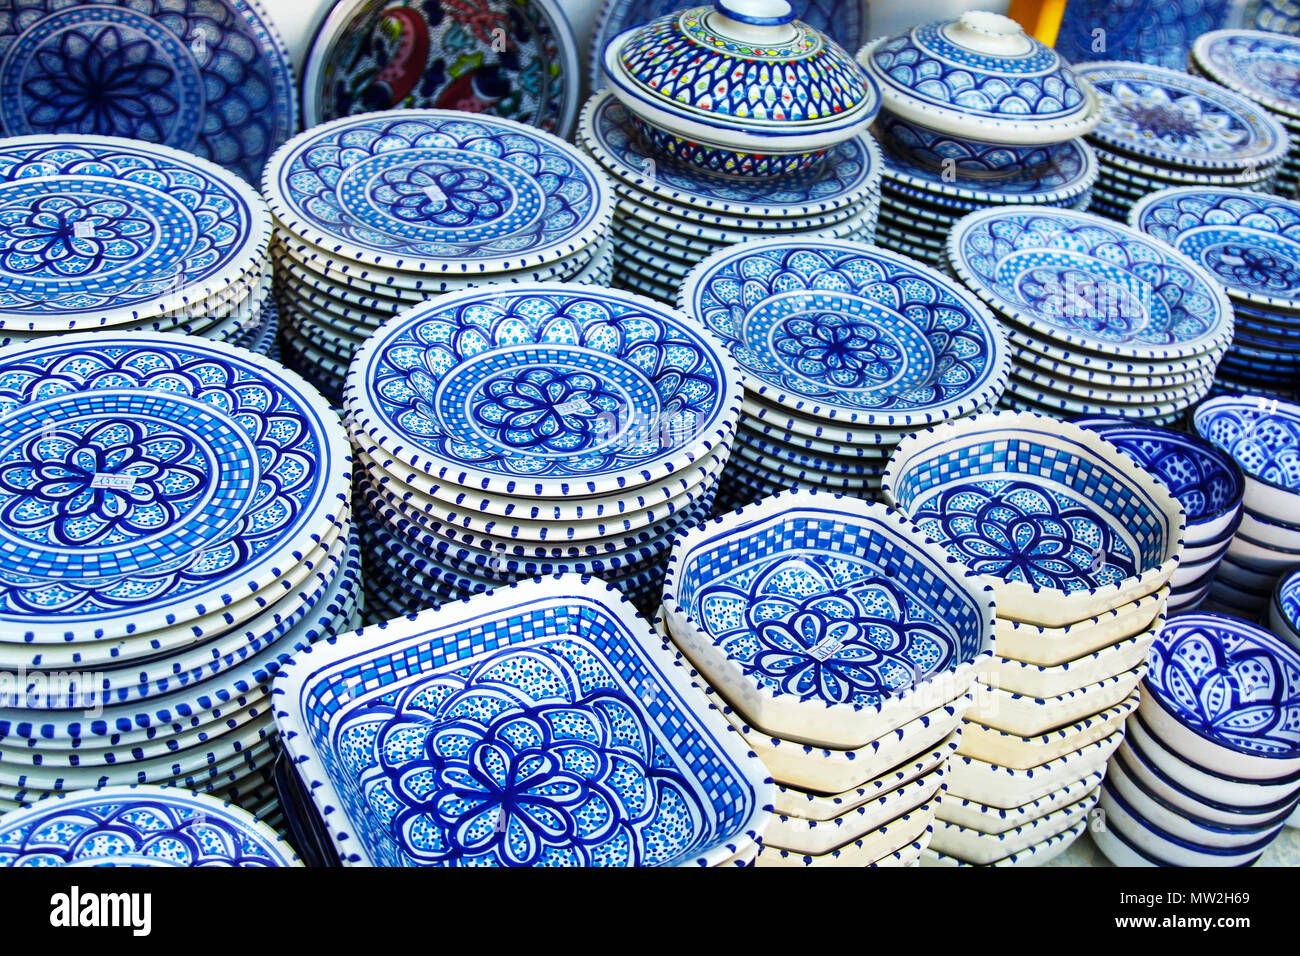 Souvenir earthenware in tunisian market, Sidi Bou Said, Tunisia. Stock Photo